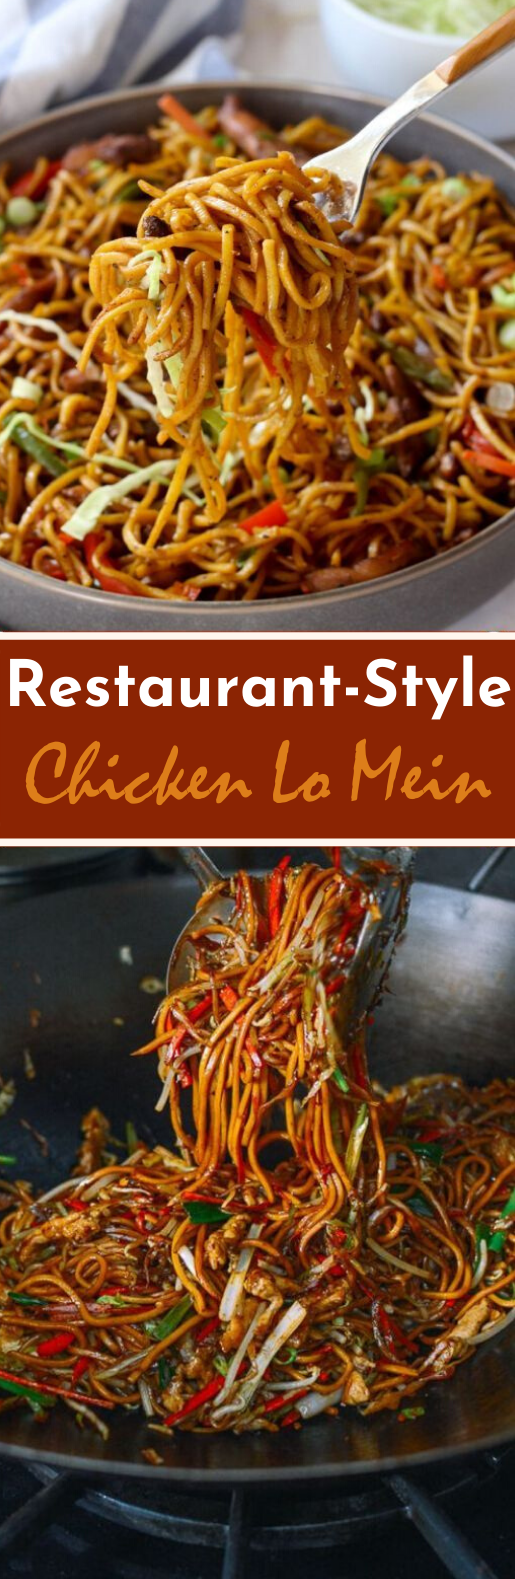 Restaurant-Style Chicken Lo Mein #chinese #dinner #noodles #recipe #takeout